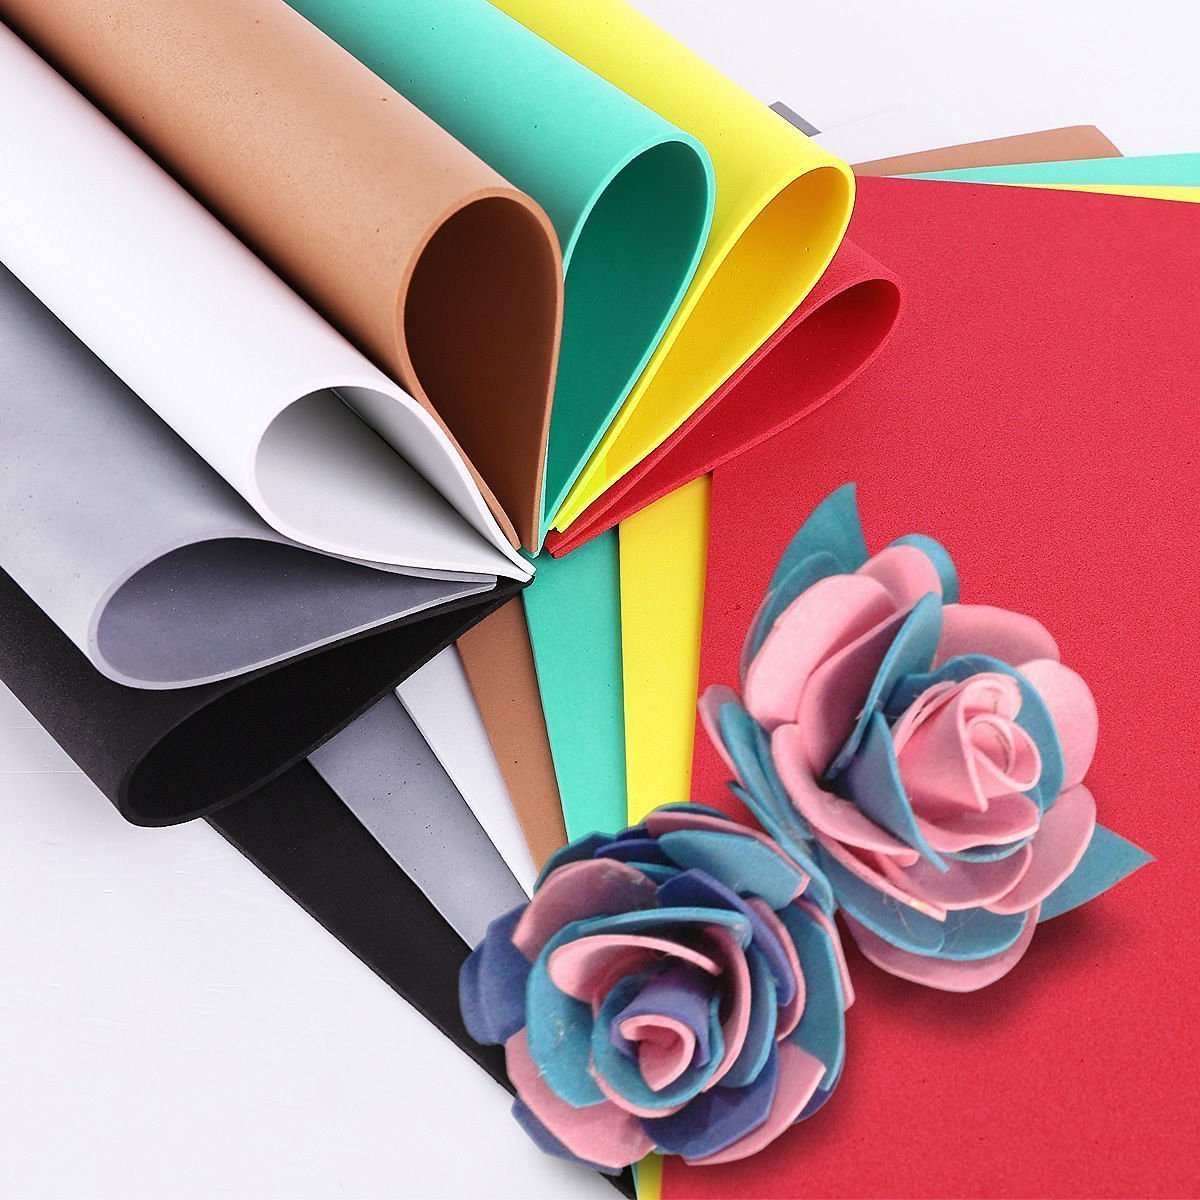 mg eva foam sheet 10 different color a4 size 2mm thickness amazon